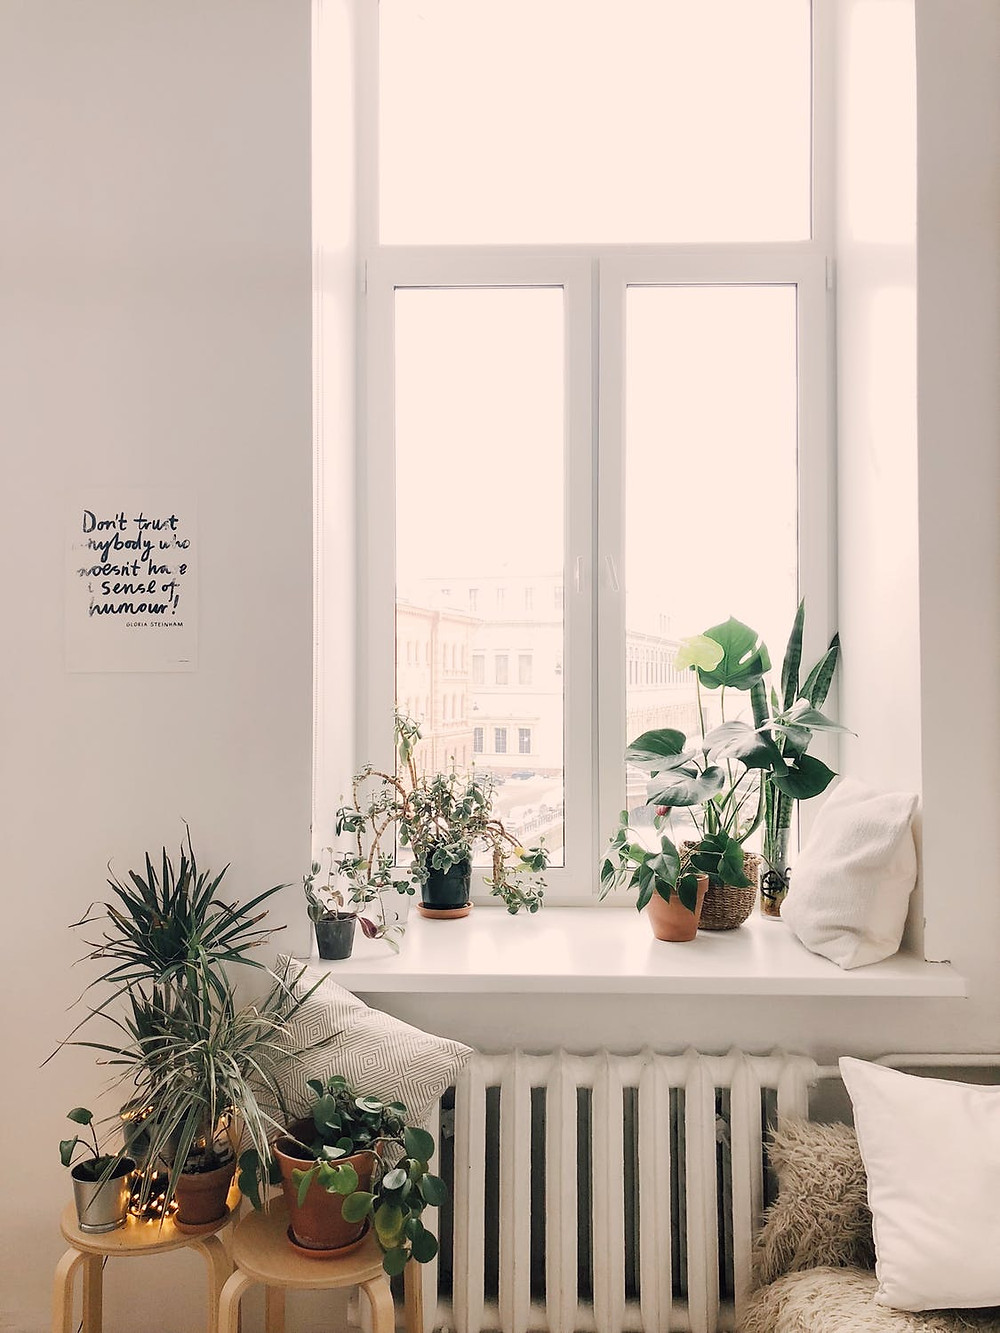 Femie Magazine Moving? Here is What You'll Need to Make Your New Place Feel Like Home